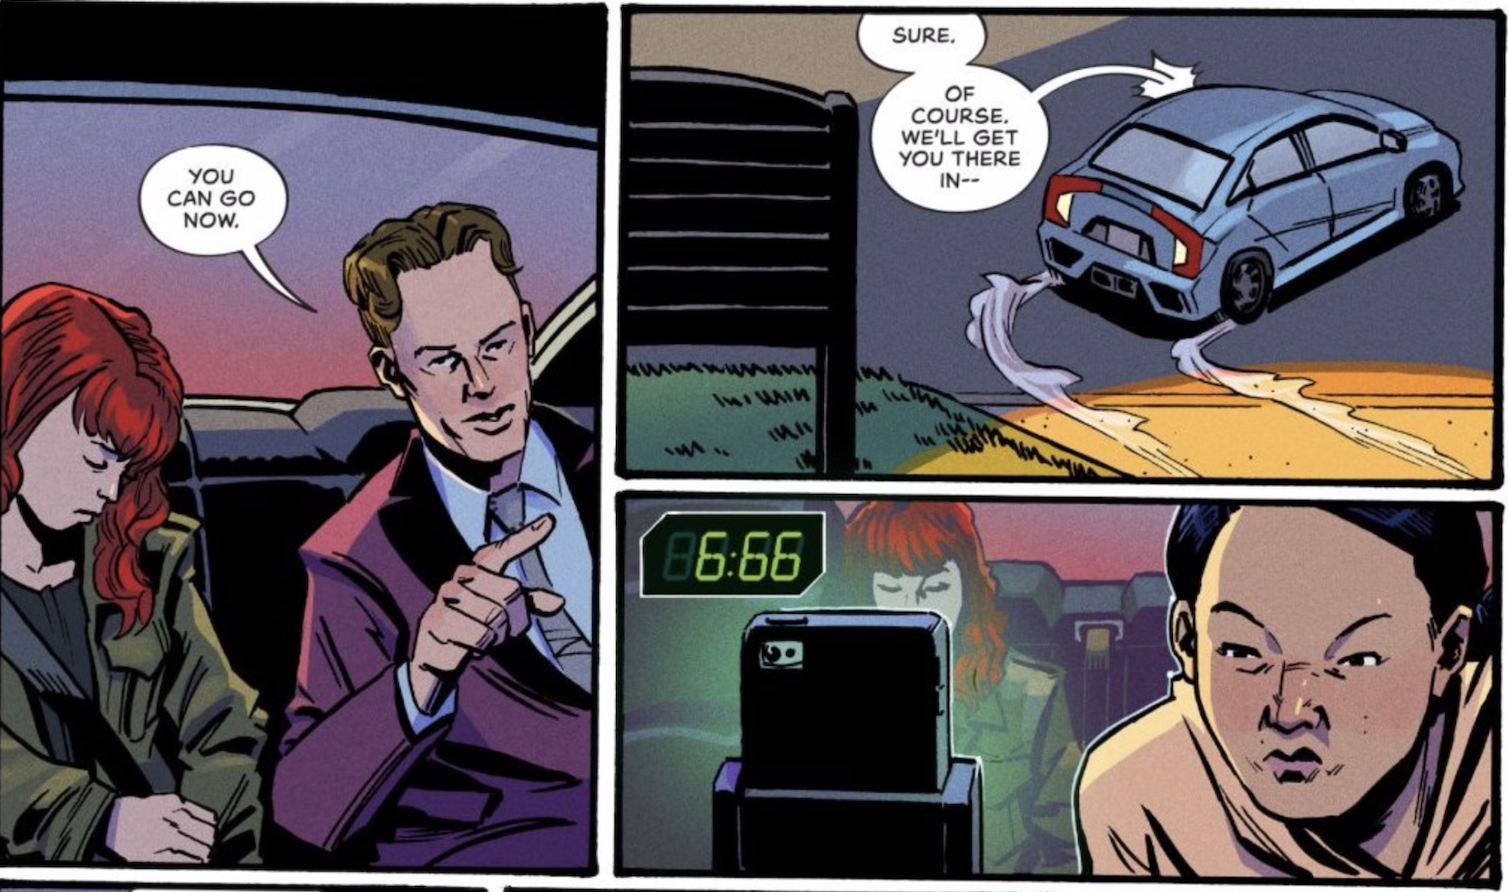 A few panels from AFTERLIFT.  Dumu tells Janice she can drive away.  Janice checks her phone app to see the estimated time it will take to their destination.  The app's clock reads 6:66.